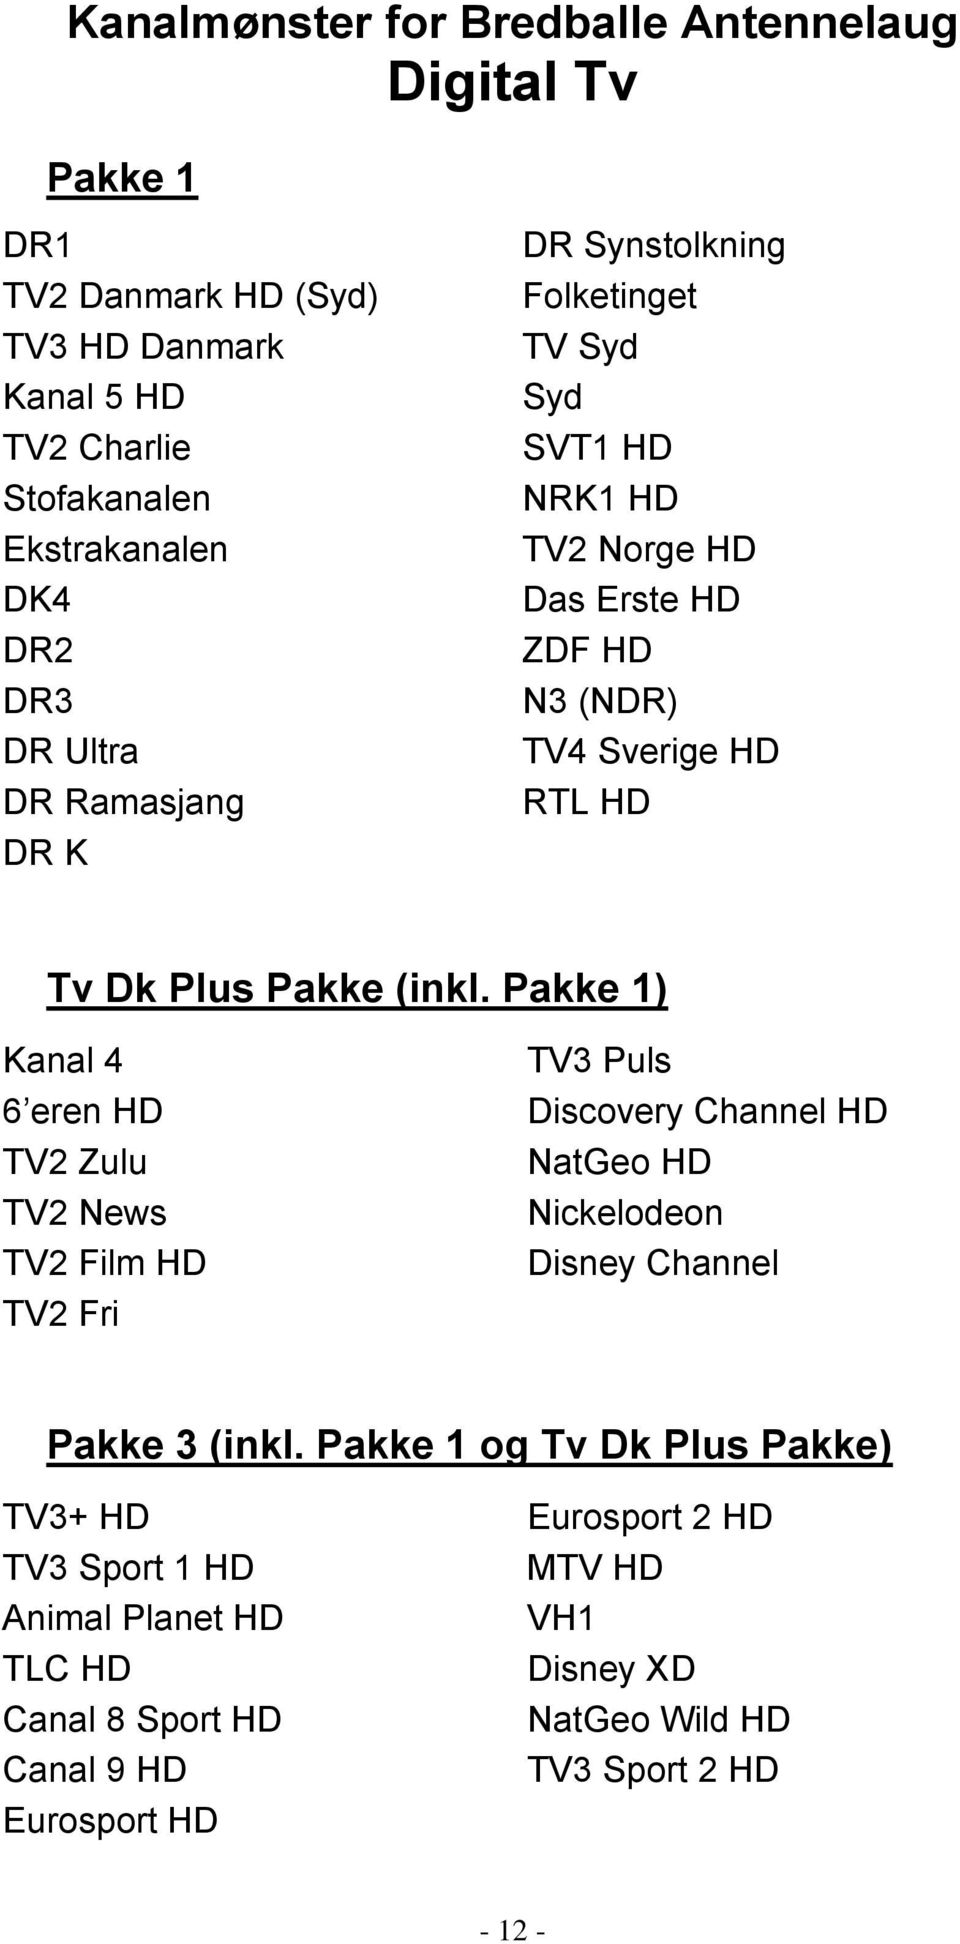 Pakke 1) Kanal 4 6 eren HD TV2 Zulu TV2 News TV2 Film HD TV2 Fri TV3 Puls Discovery Channel HD NatGeo HD Nickelodeon Disney Channel Pakke 3 (inkl.